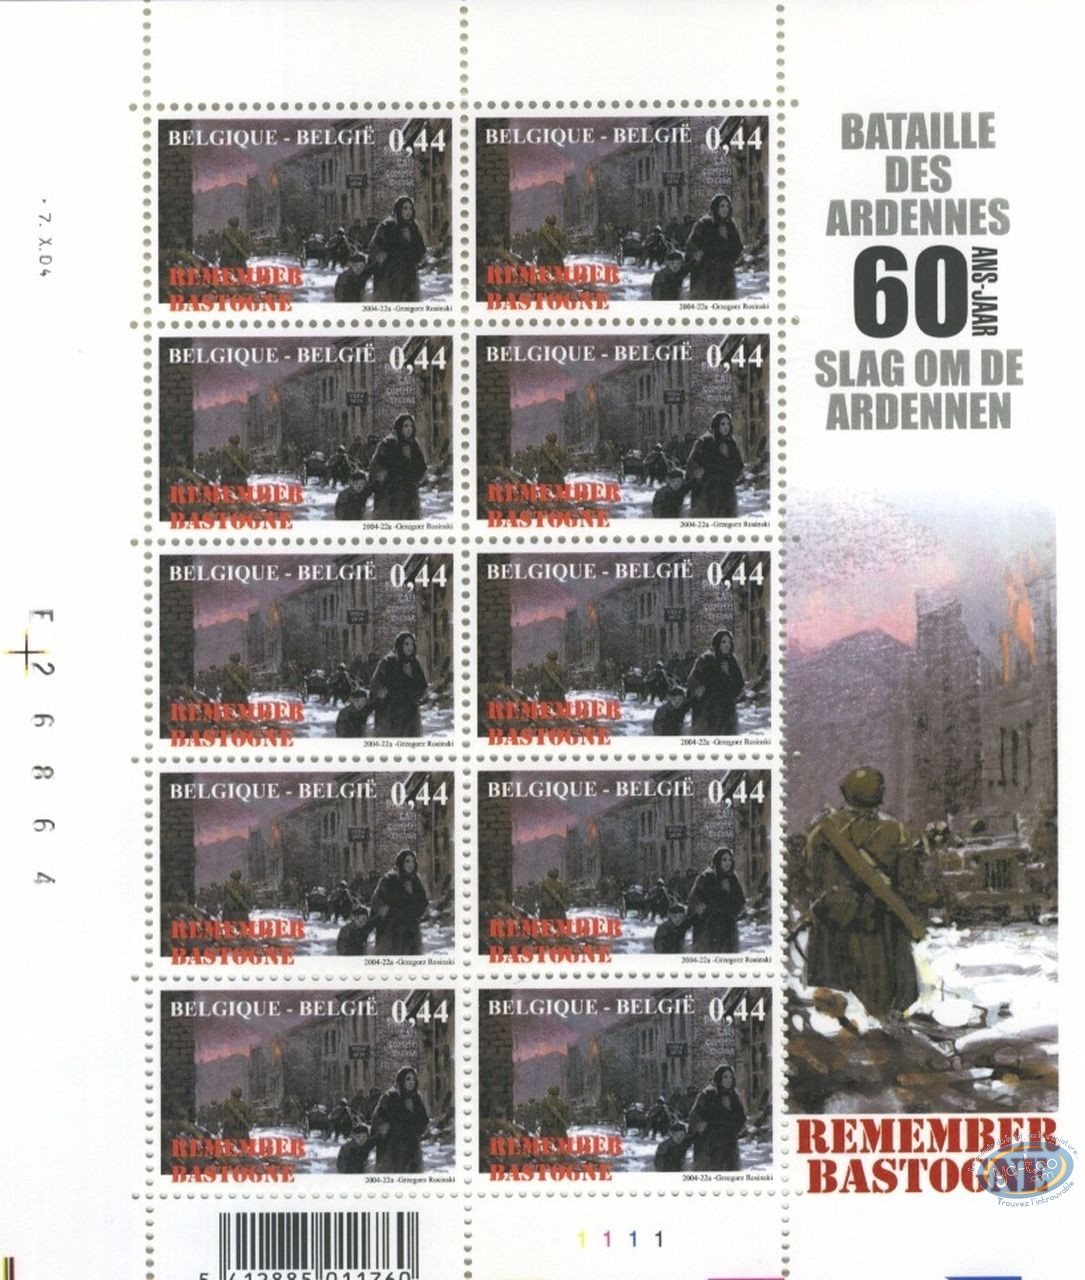 Stamp, Battle of the Bulge (The) : 10 stamps sheet woman & child